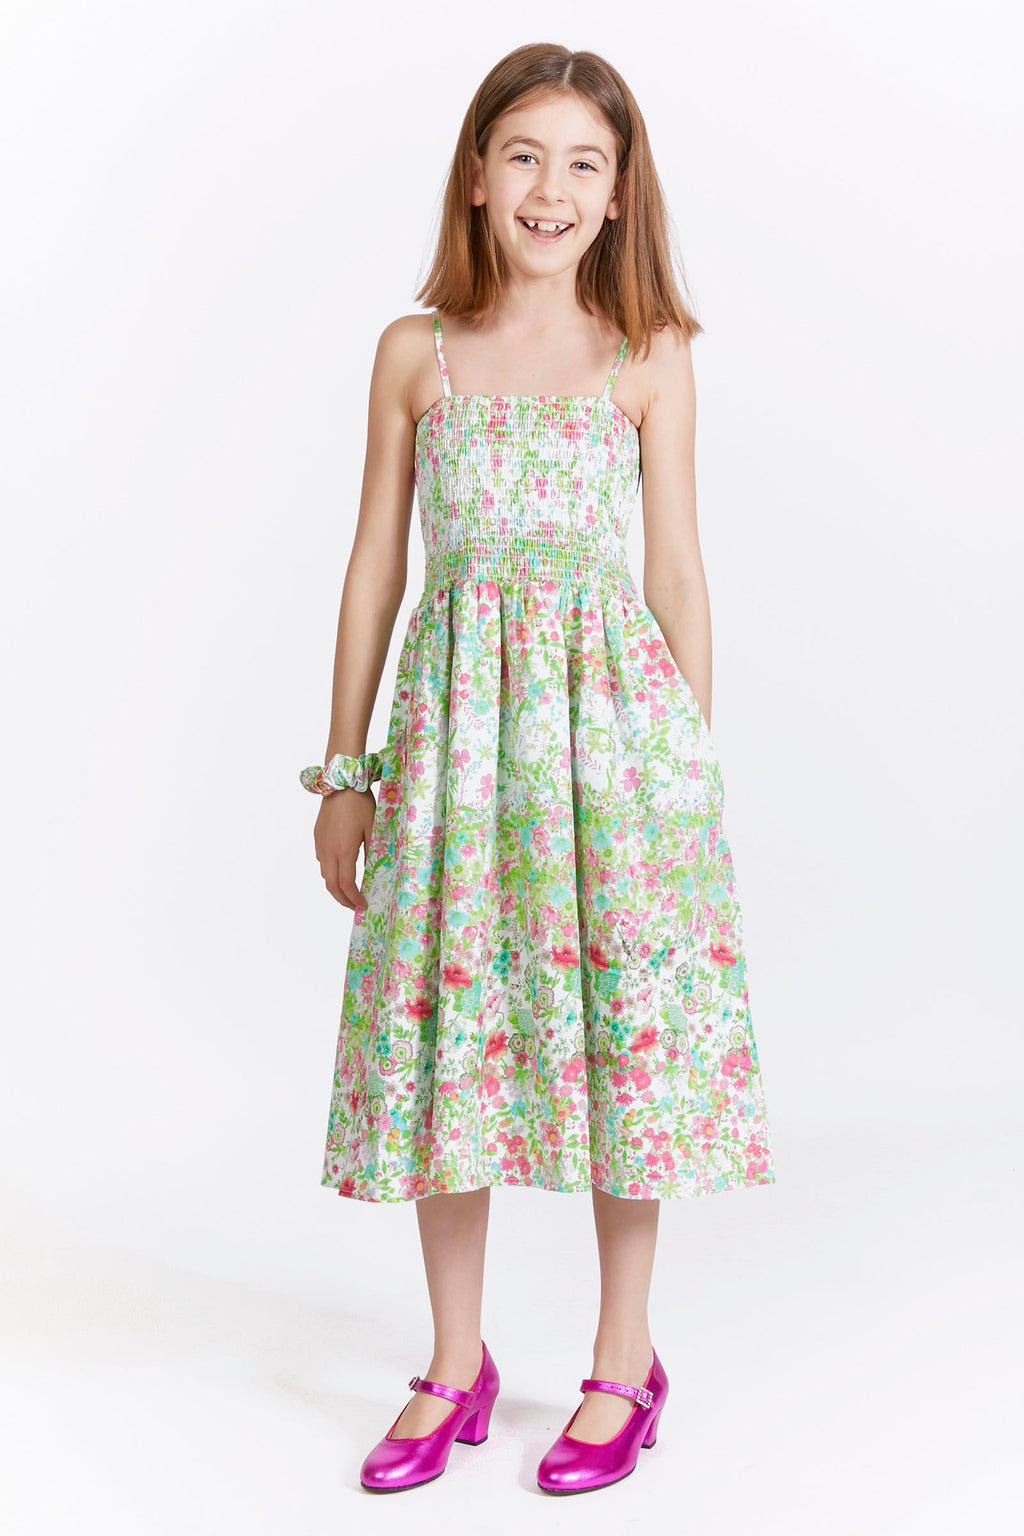 Kids Smocked Floral Dress